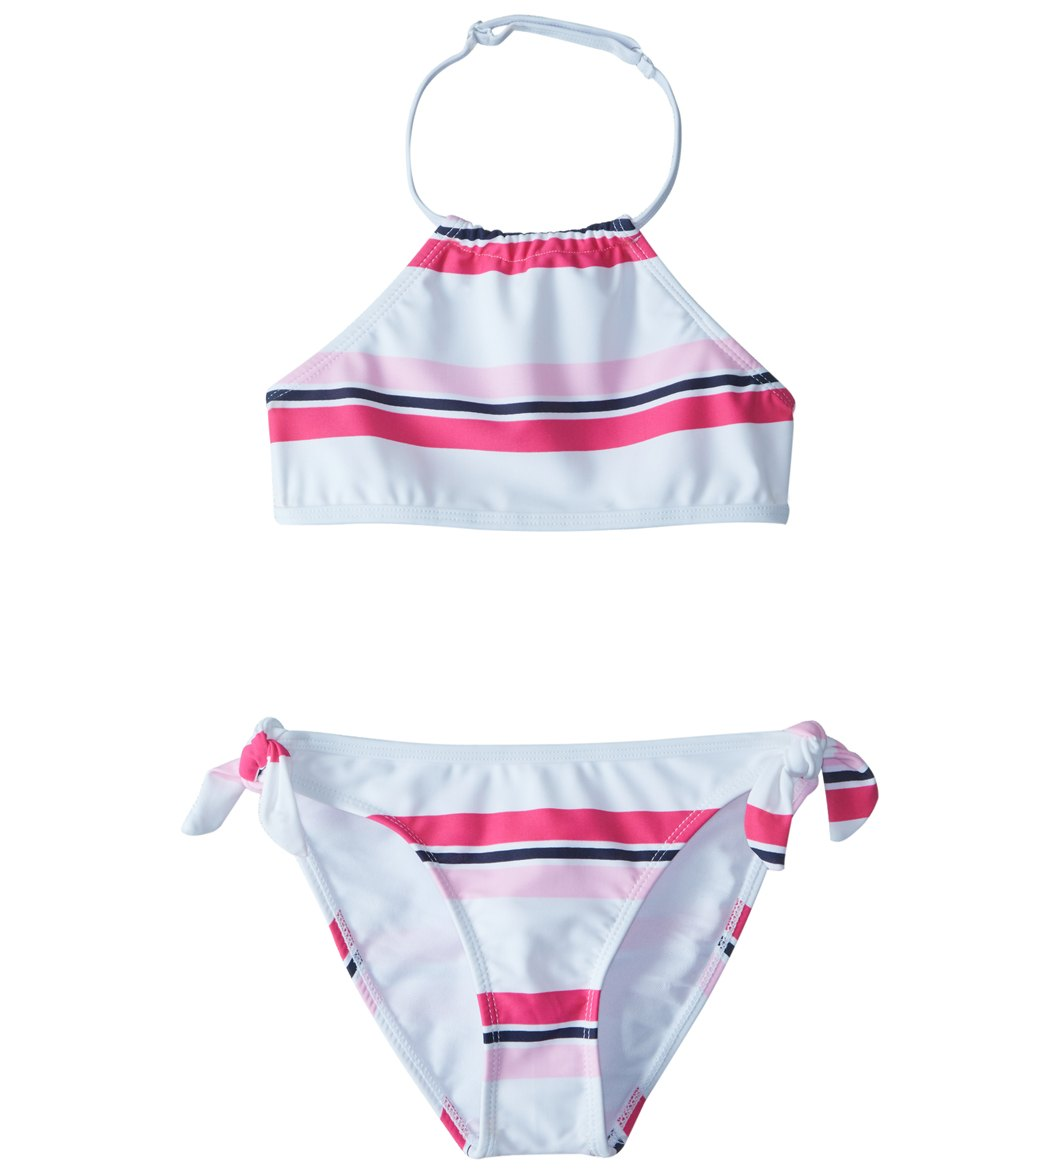 ff1ef852e7 Snapper Rock Girls  Cabana Stripe Halter Bikini Set (8-16) at ...